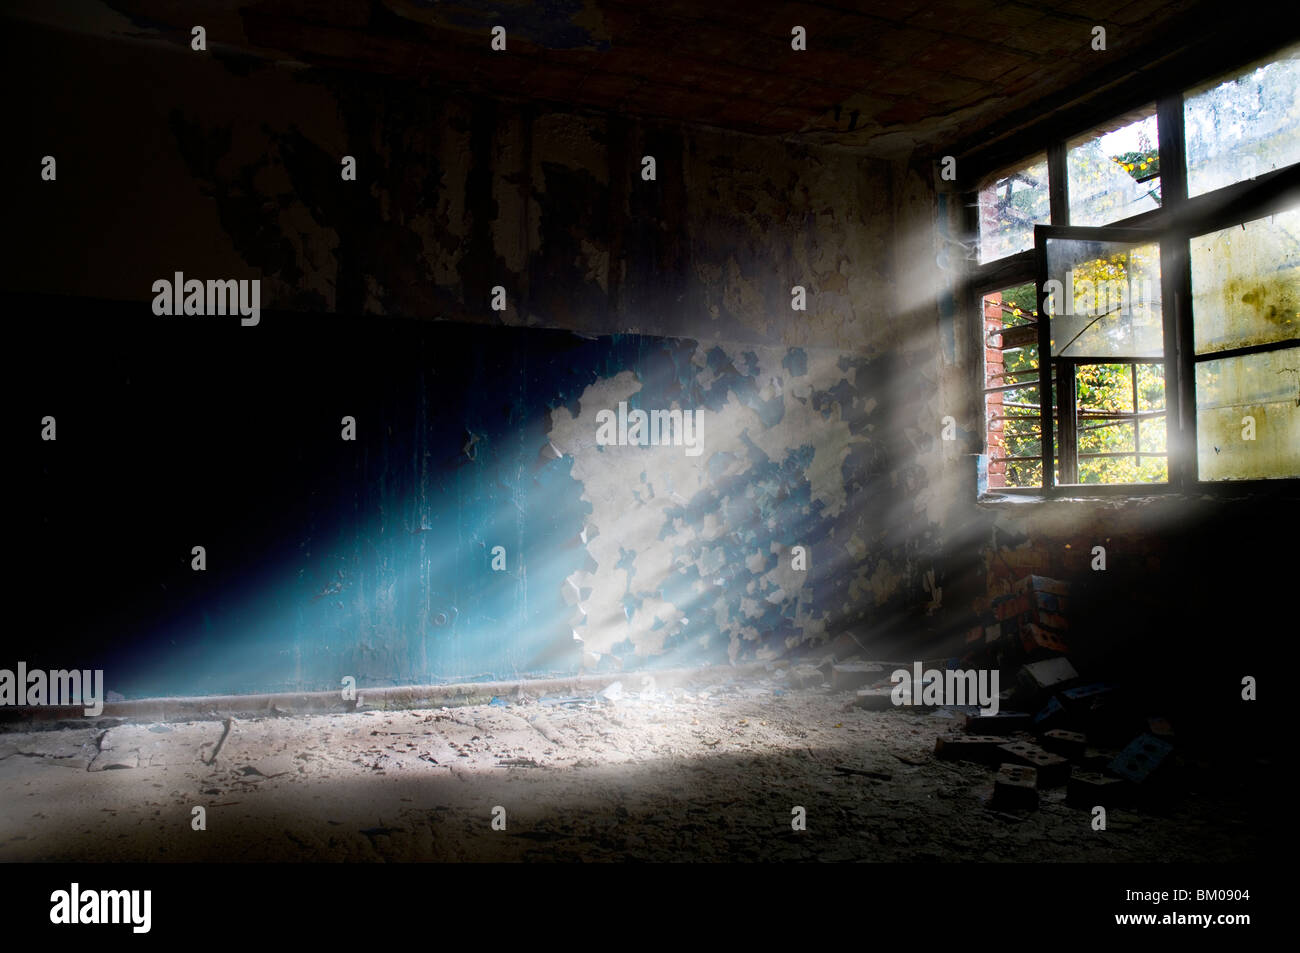 Sunlight shining through an old broken window - Stock Image